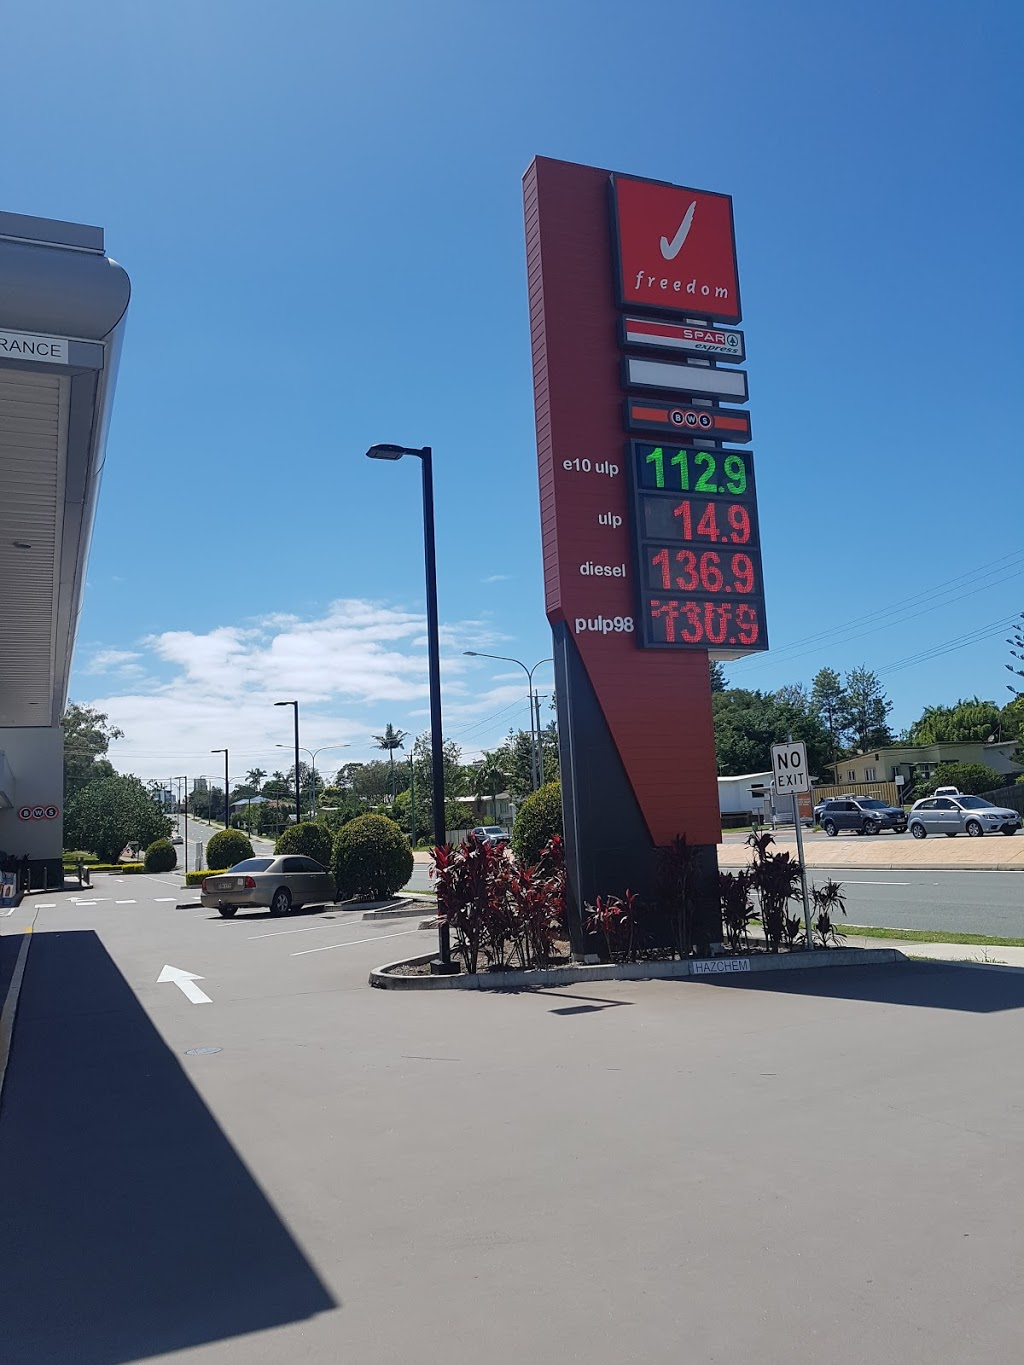 Freedom Fuels | gas station | Smith St Motorway, Southport QLD 4215, Australia | 0755313288 OR +61 7 5531 3288